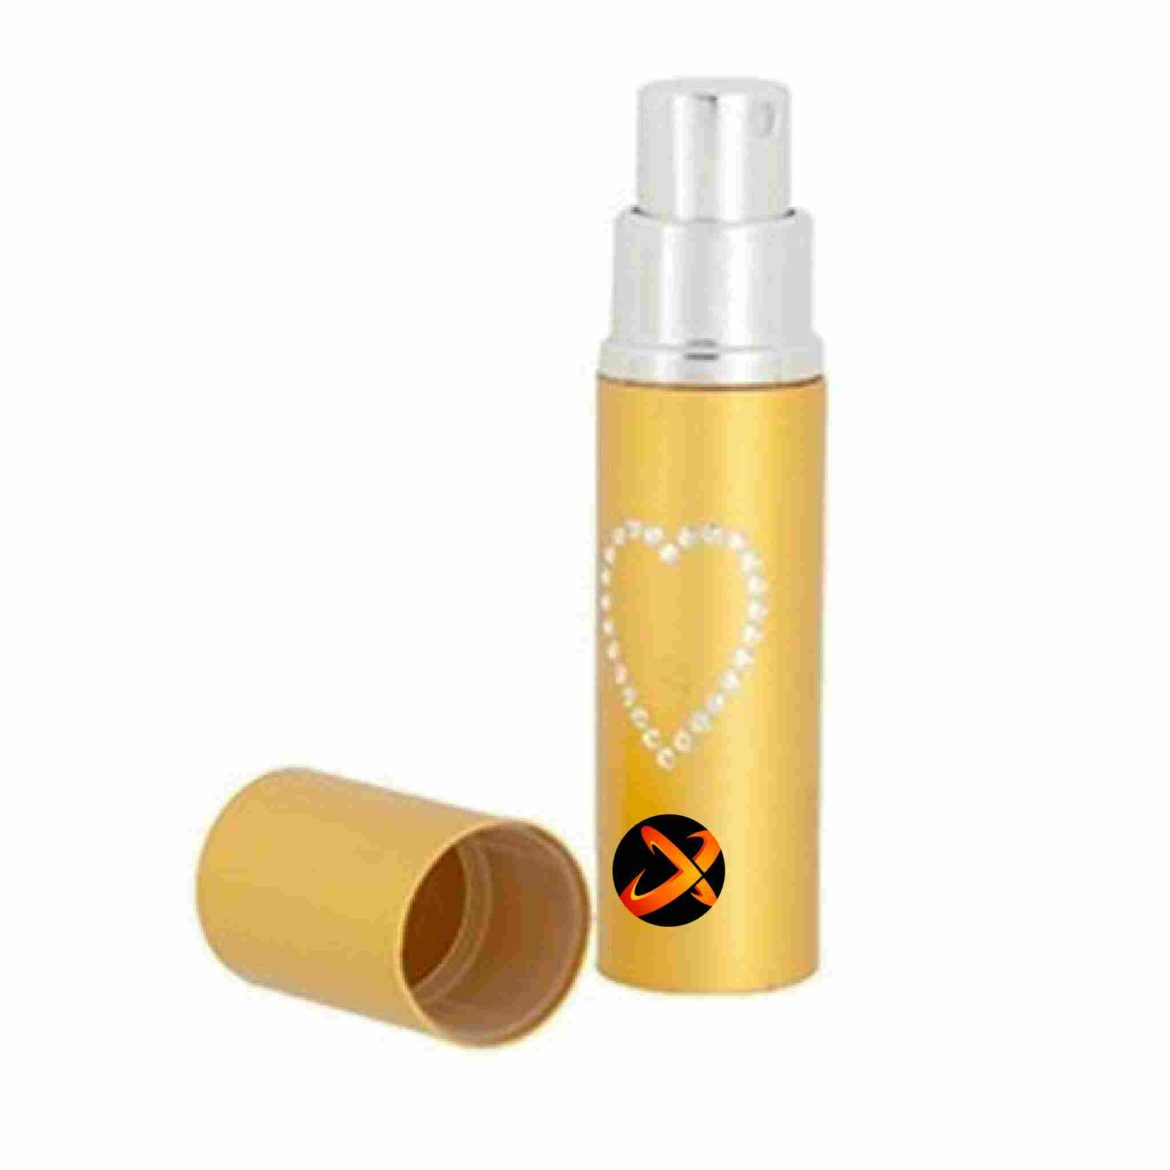 Lipstick pepper spray without cap